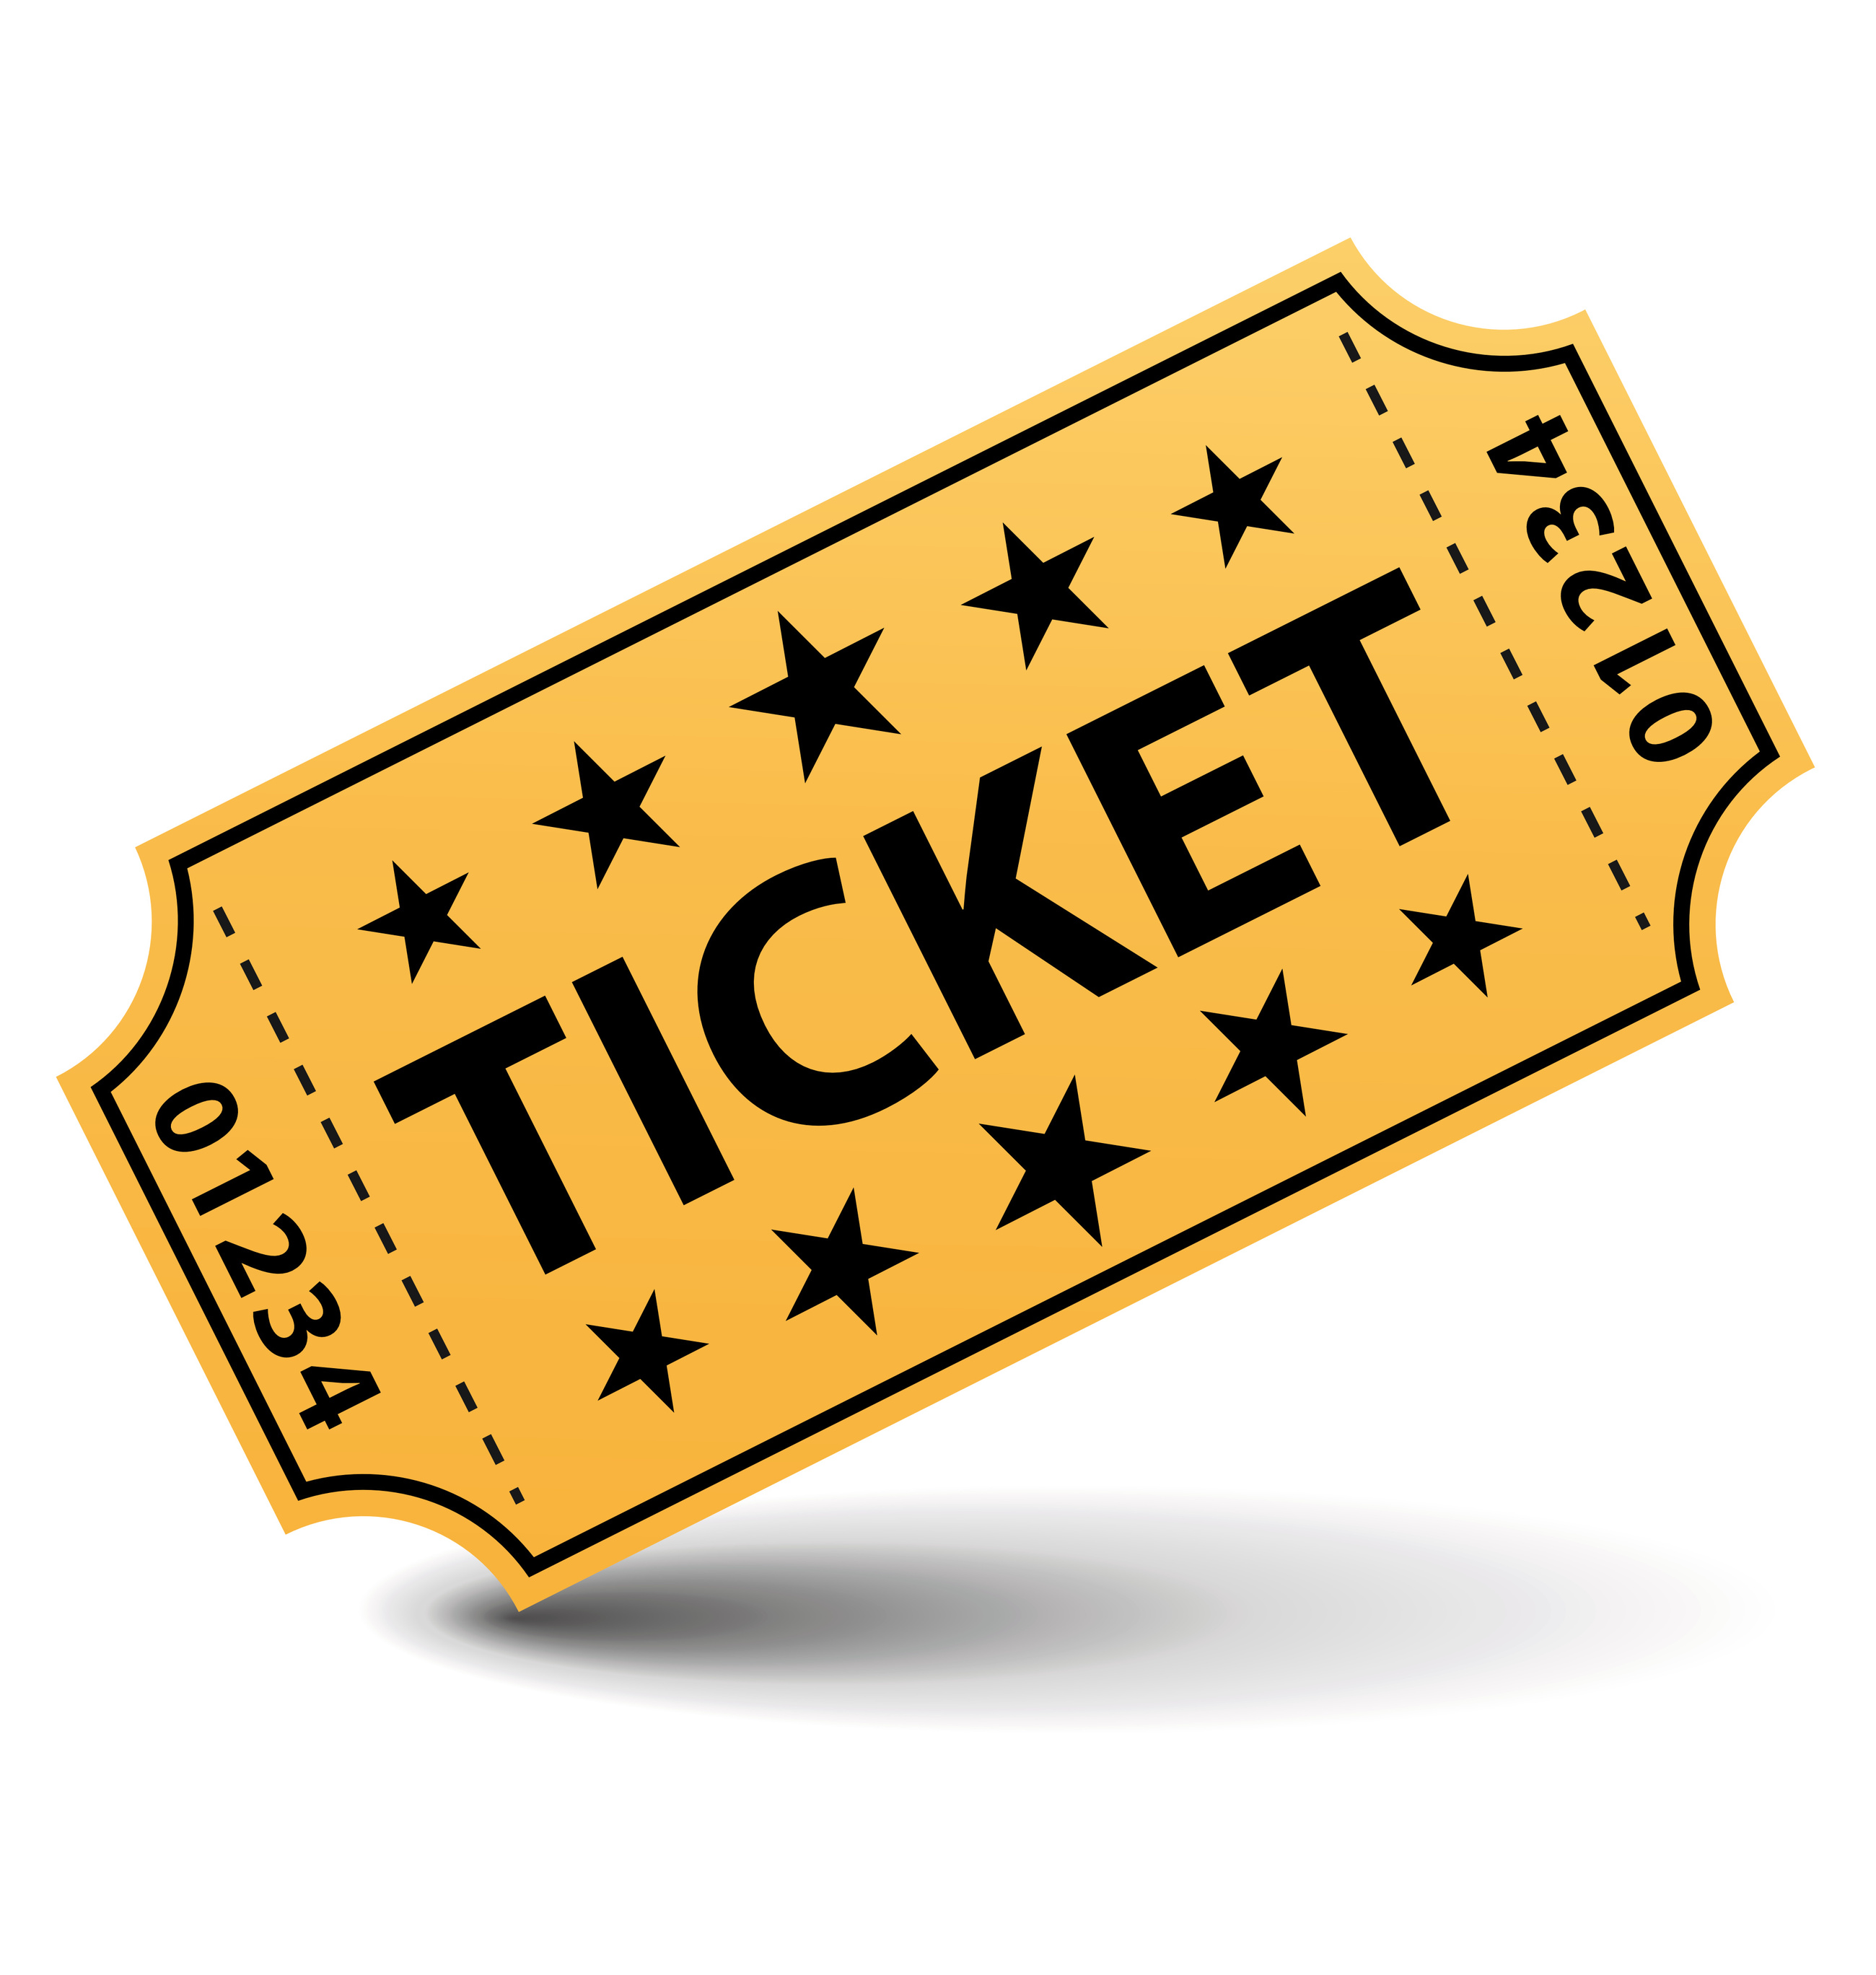 Buy Raffle Tickets There Are 5 Great Baskets To Choose From This Year